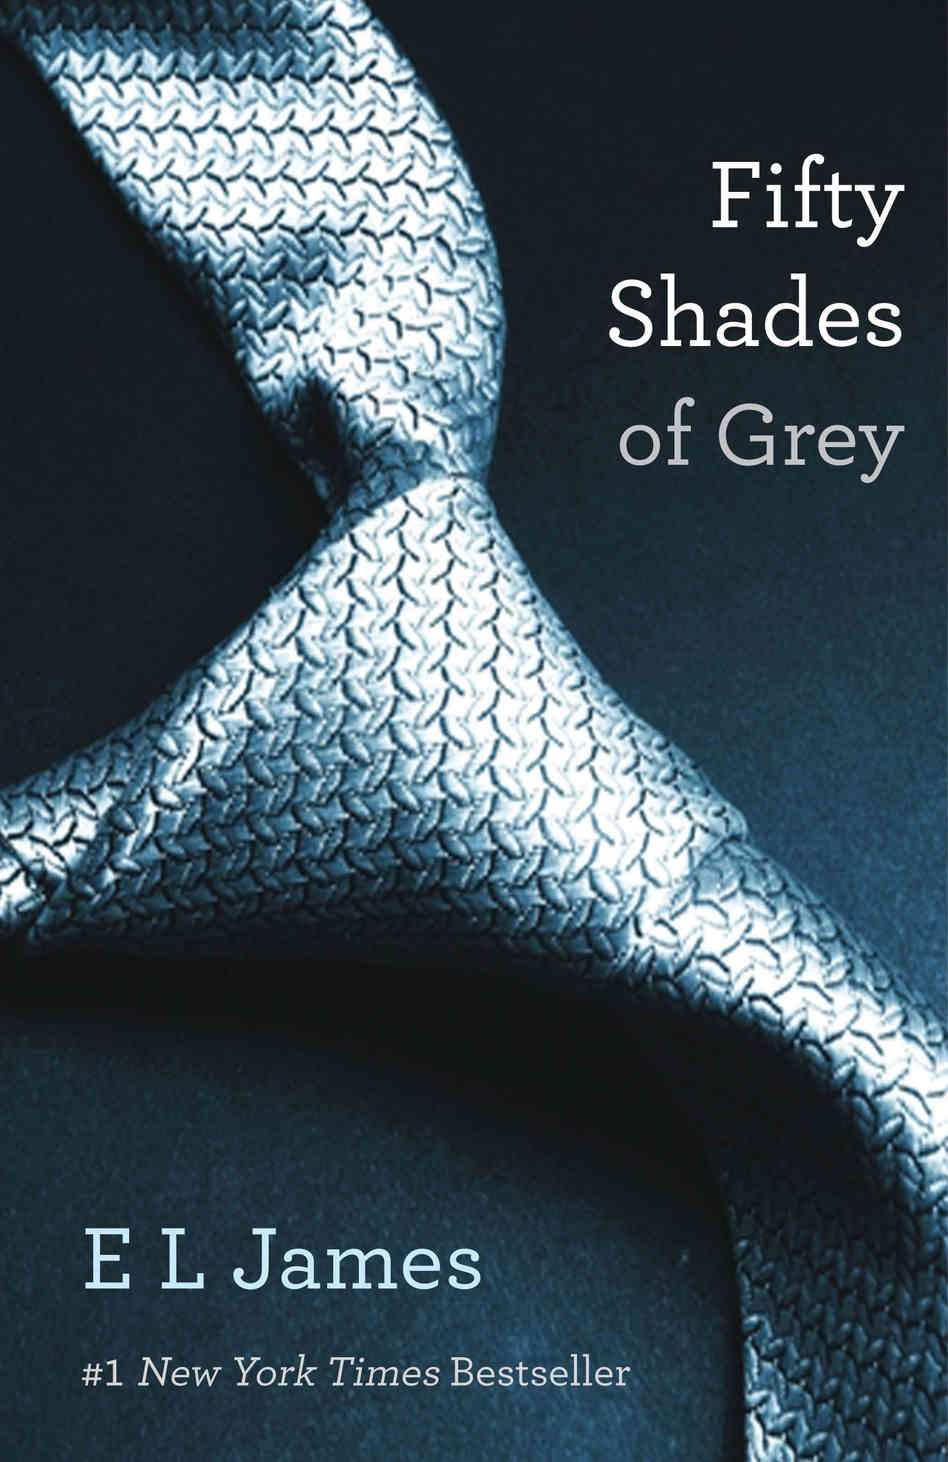 Fifty shades of grey silver balls